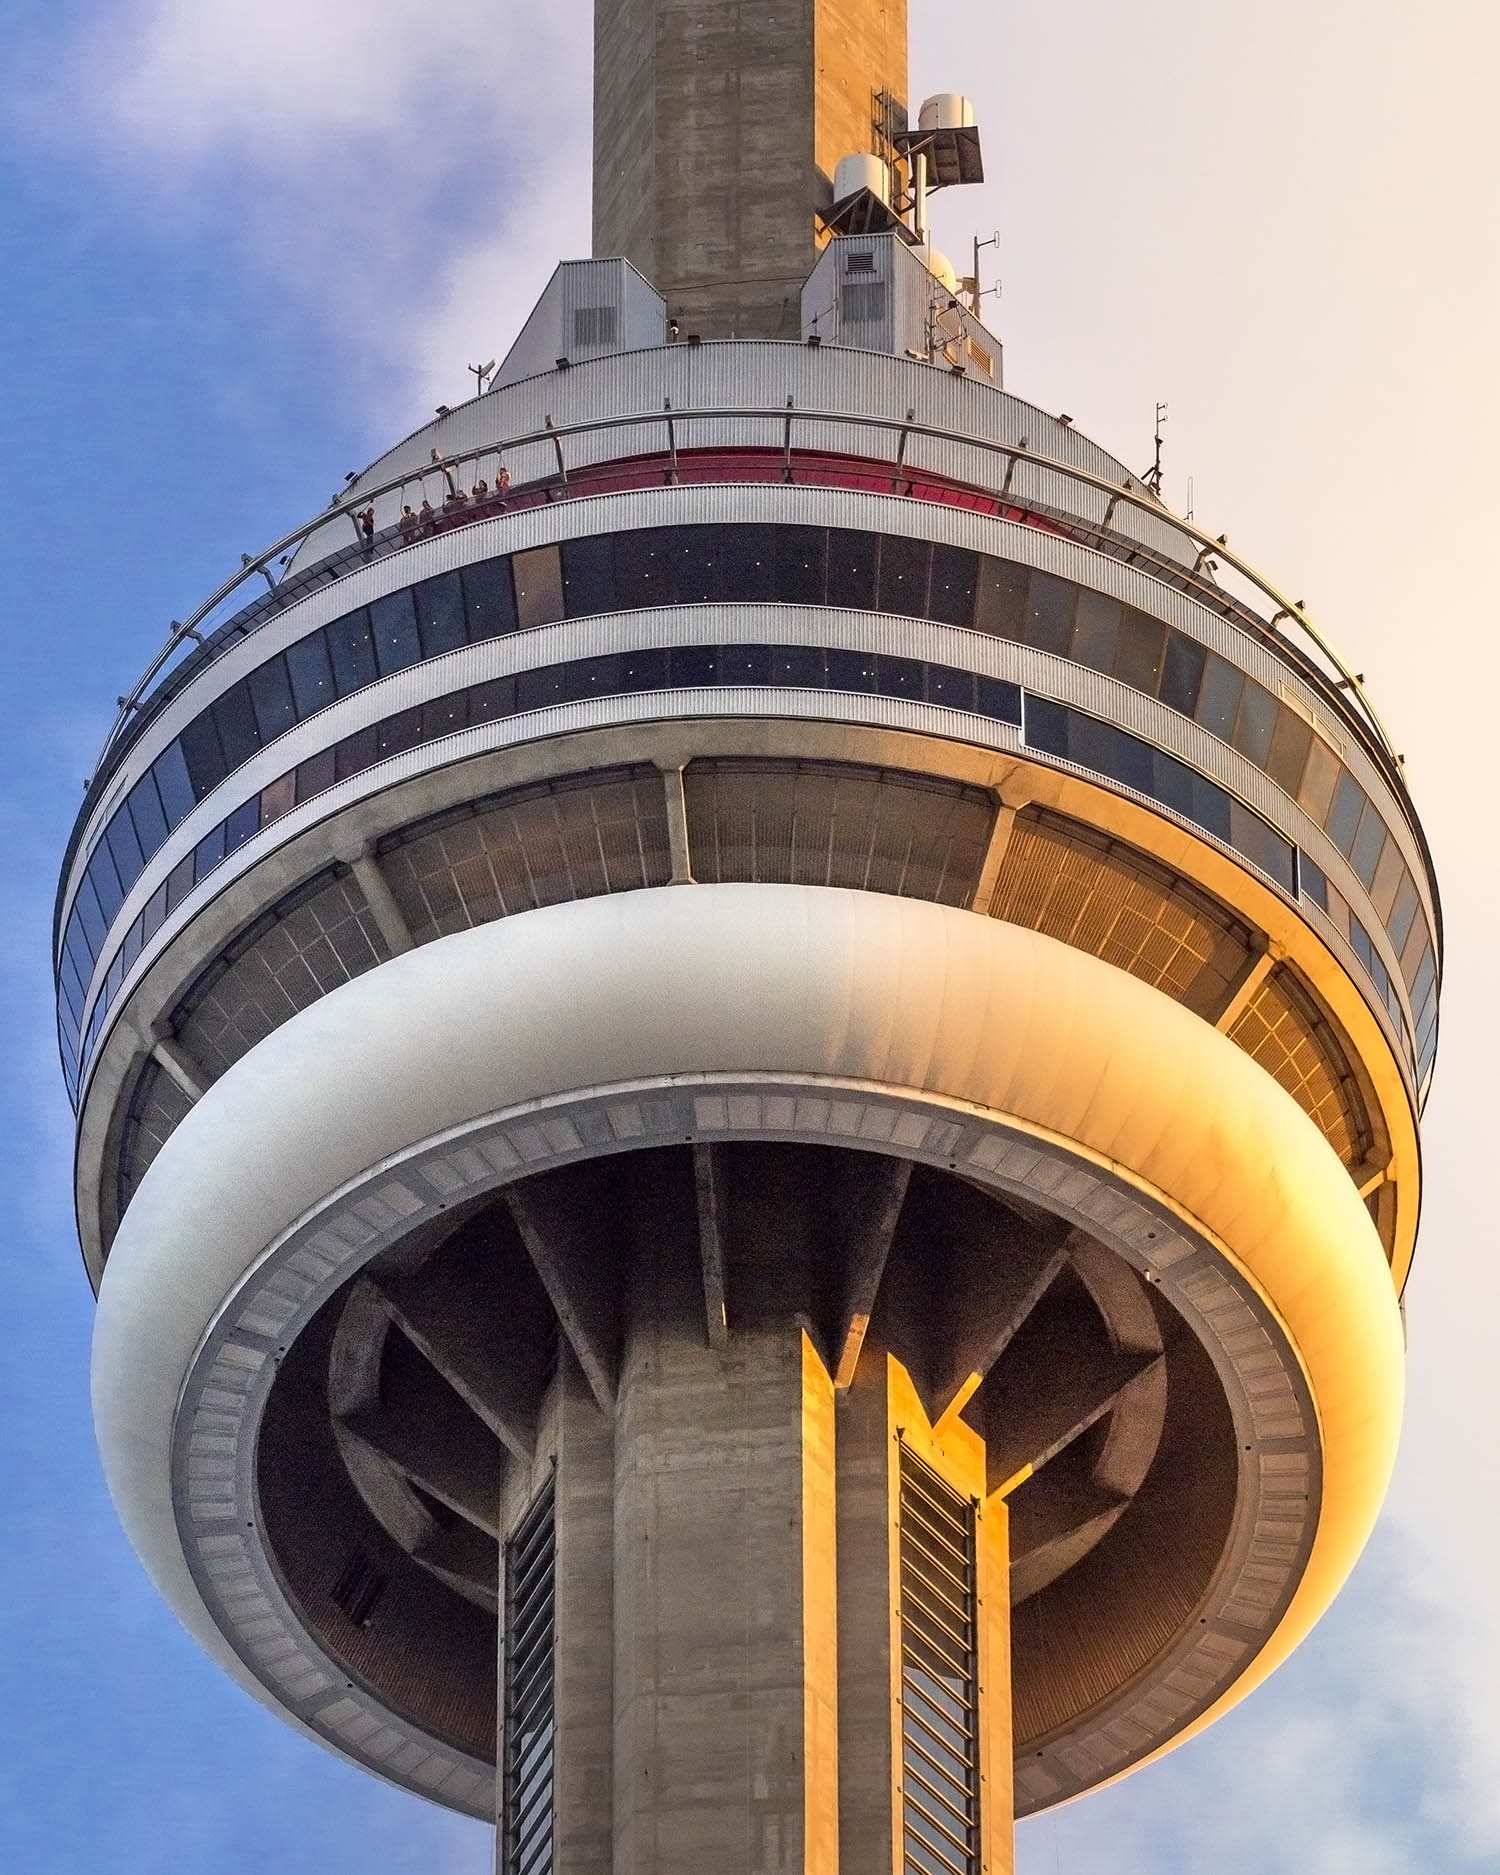 A close up of the CN Tower during a sunset in Toronto, Ontario, Canada shot during the Canada 150 celebrations. Image by Dennis Marciniak of denMAR Media.